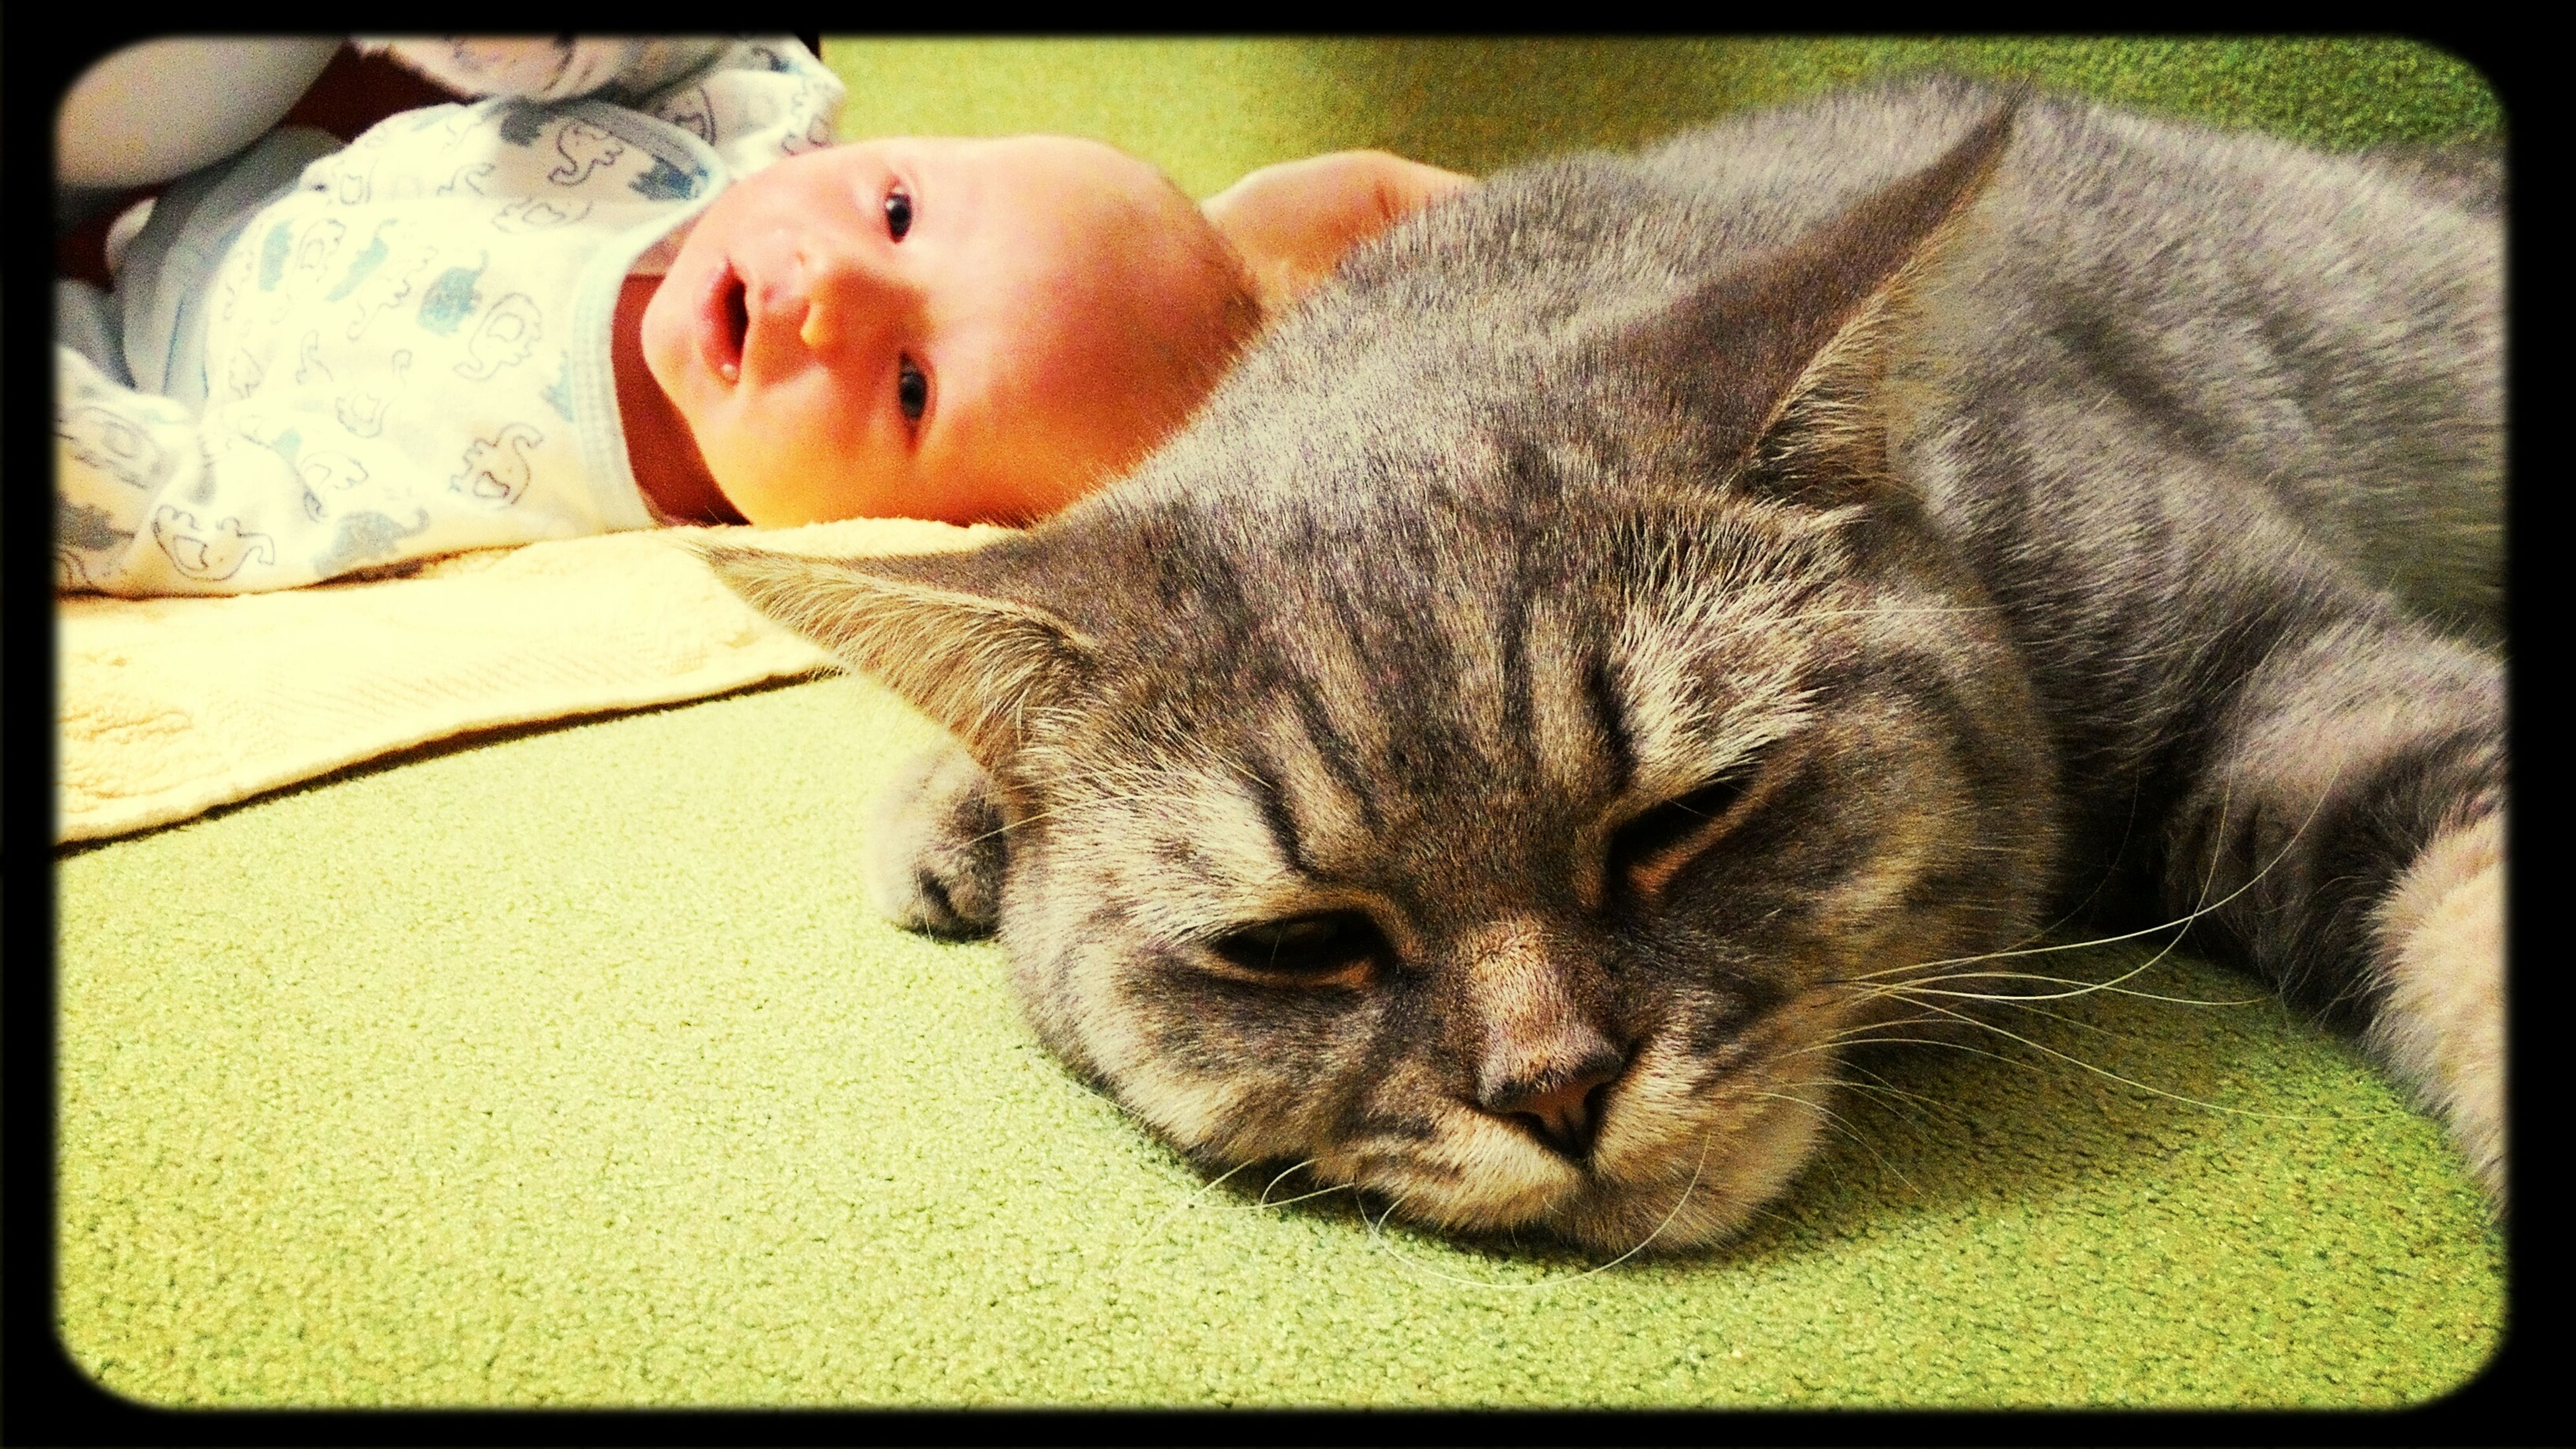 transfer print, animal themes, one animal, mammal, auto post production filter, domestic animals, pets, relaxation, lying down, sleeping, resting, eyes closed, indoors, close-up, domestic cat, portrait, cute, feline, looking at camera, one person